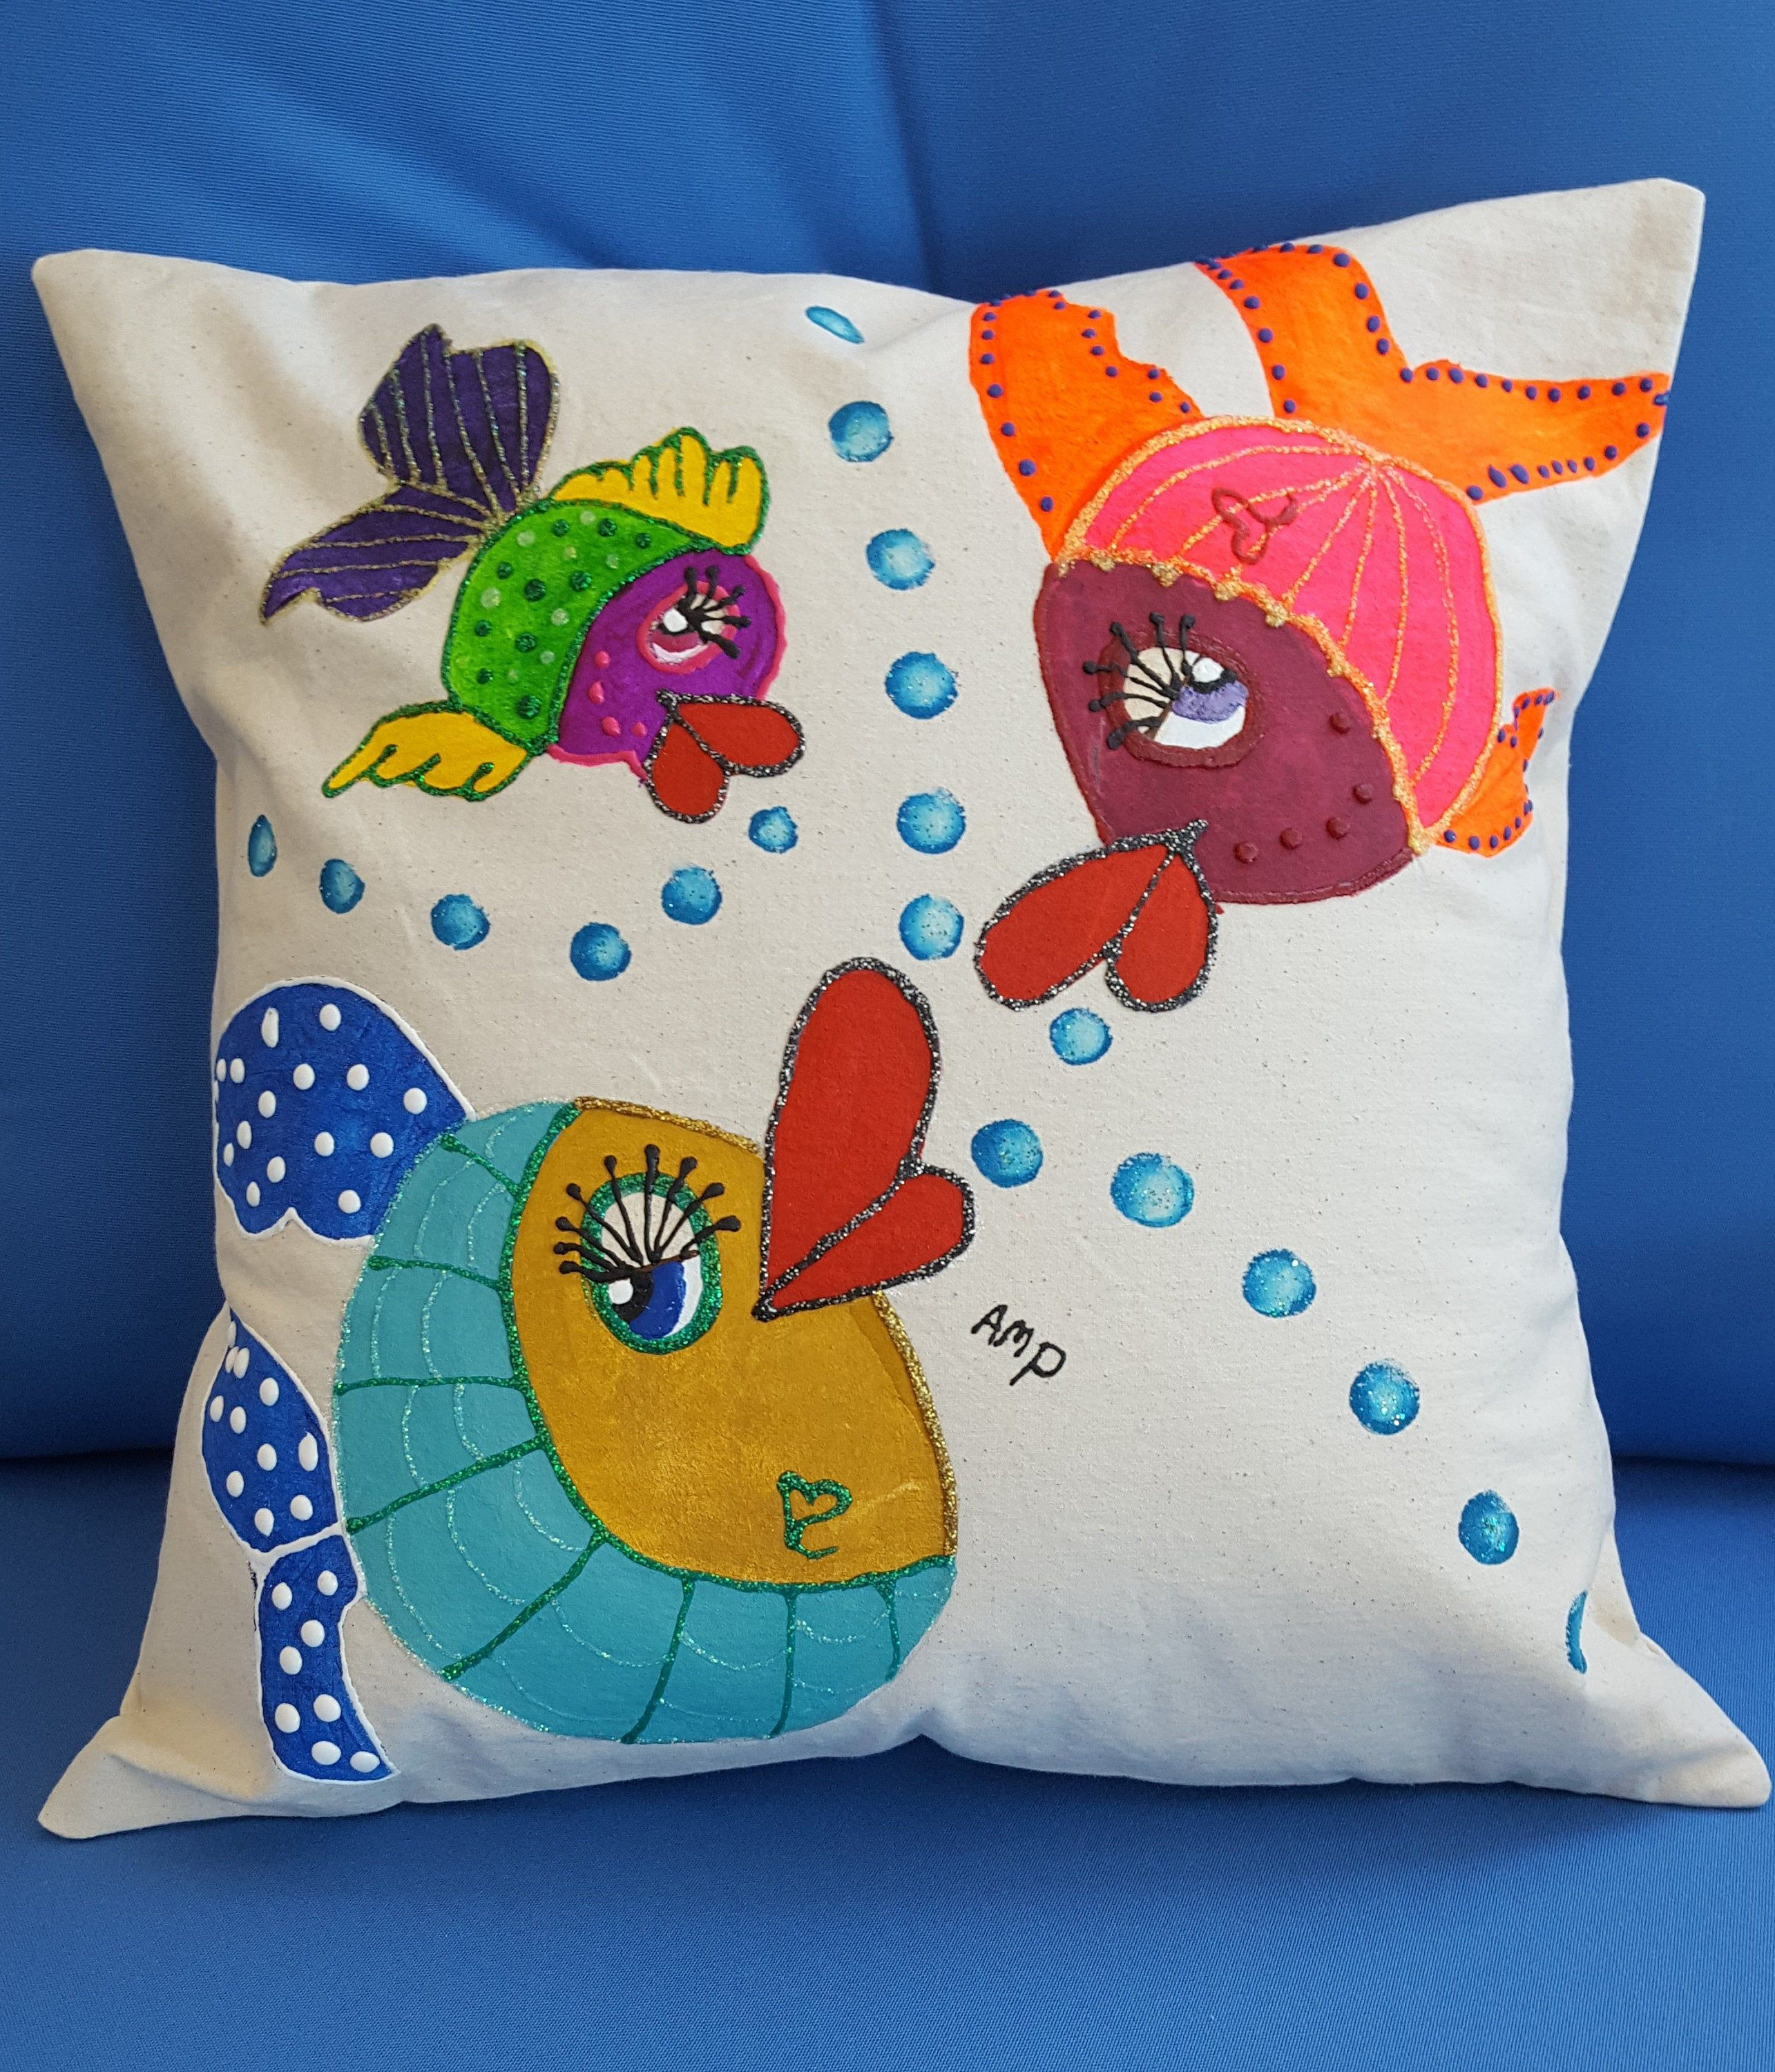 Decorative Pillow Cover Funky Fish Handmade And Hand Painted Colorful Funky Fish Fits A 16 Pillow G Hand Painted Pillows Decorative Pillow Covers Pillows